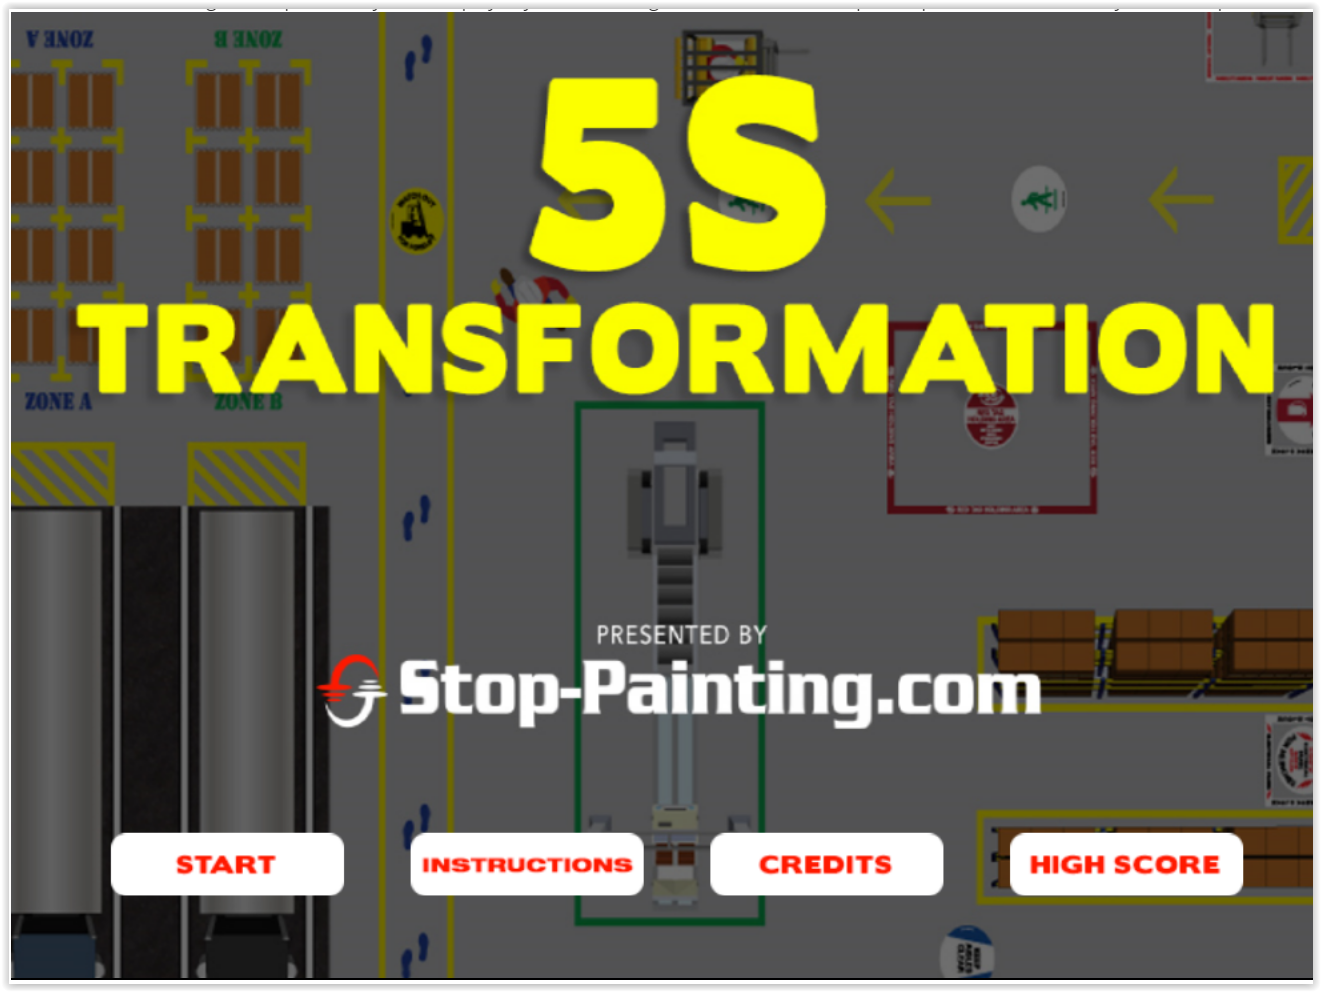 A Lean Journey 5s Factory Game Teaches The Basic Benefits